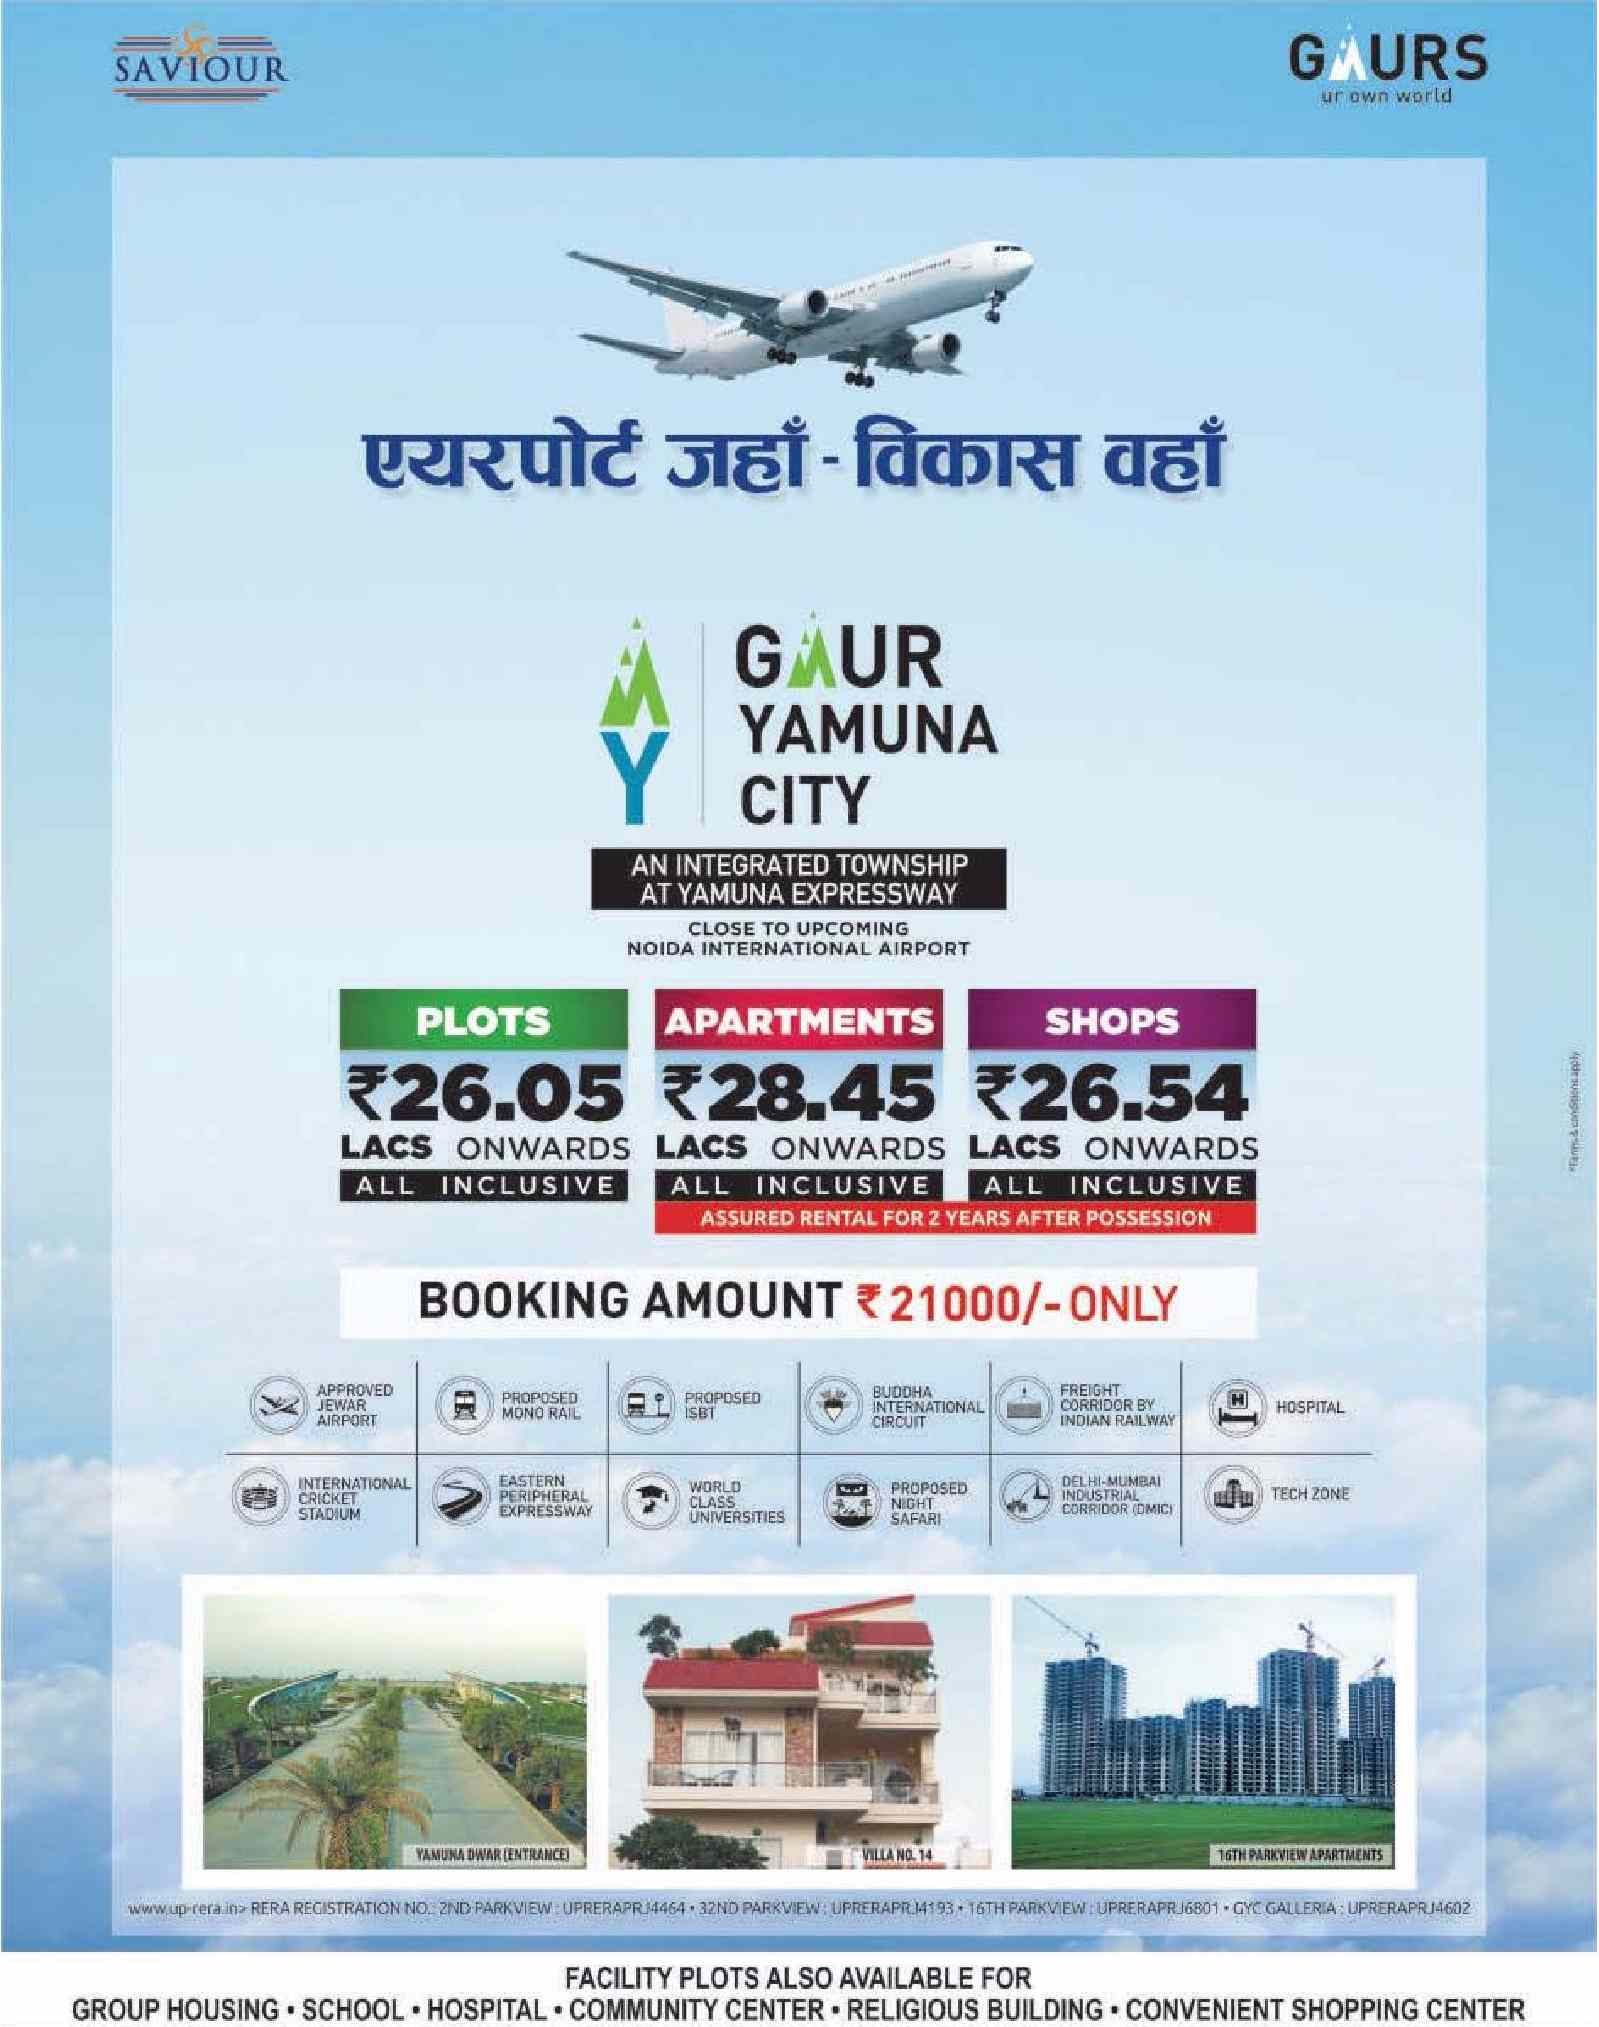 Live in an integrated township at Gaur Yamuna City in Greater Noida